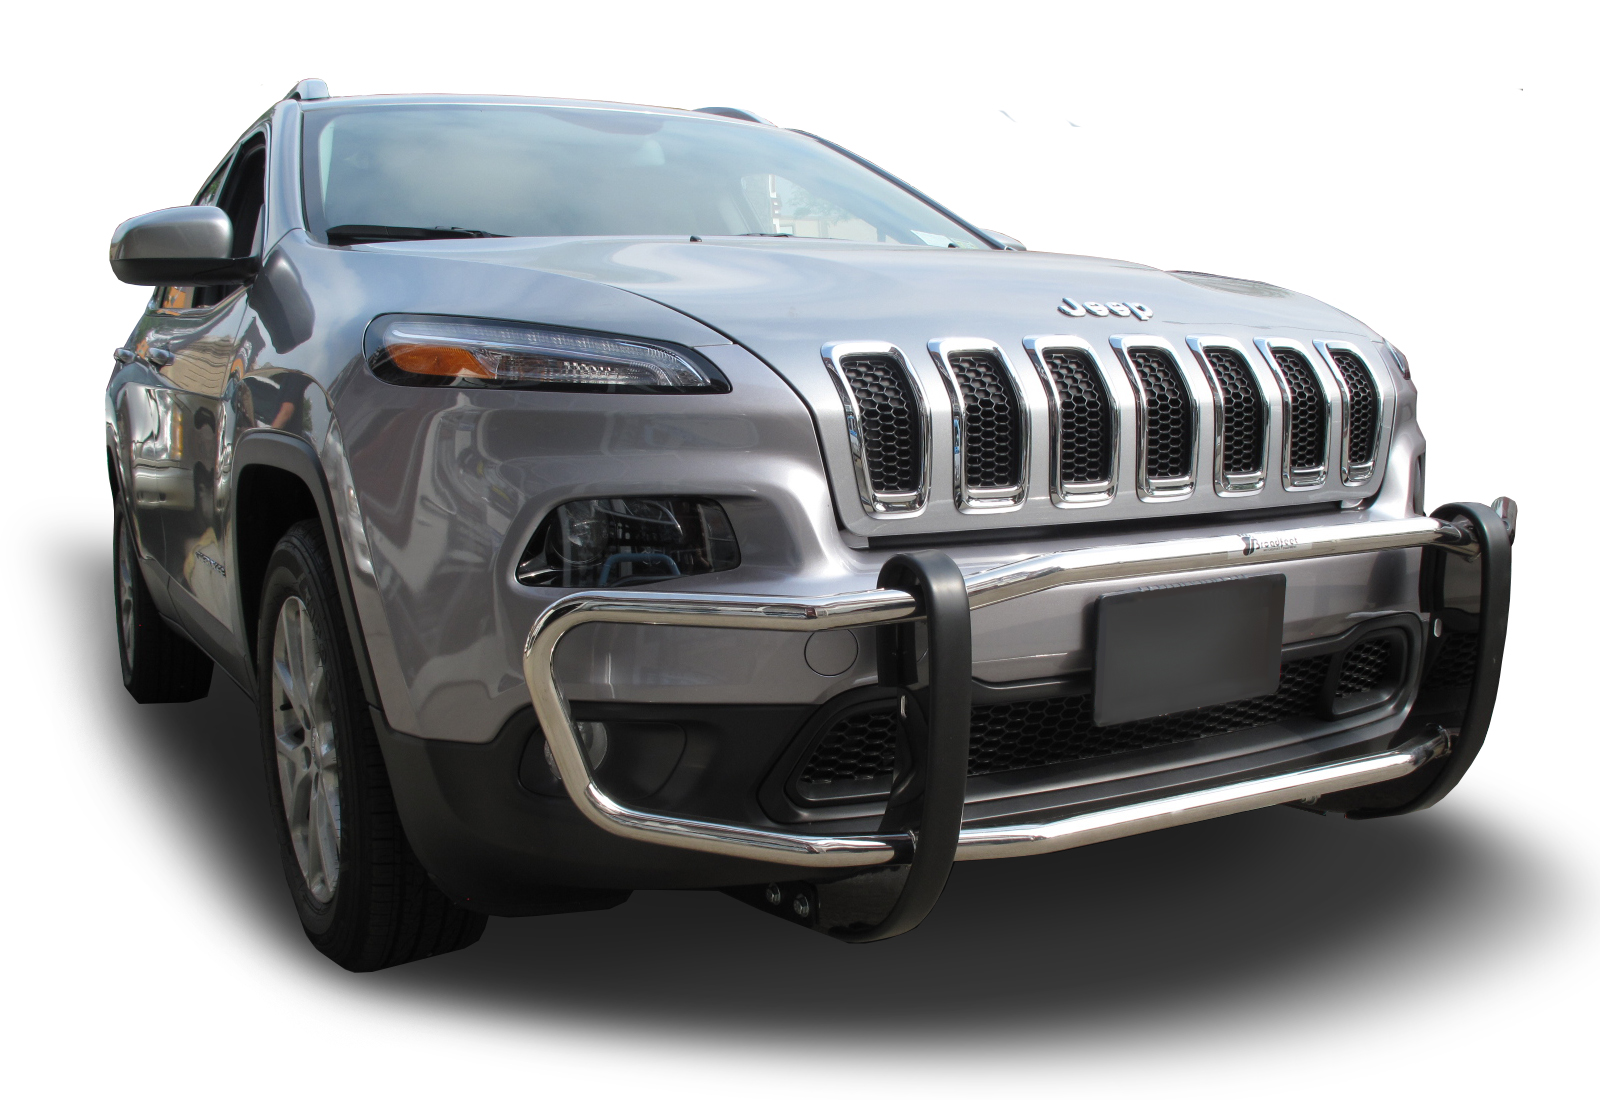 2014 2018 Jeep Cherokee Front Runner Bumper Guard In Stainless Steel Paperclip Style Idfr Automotive